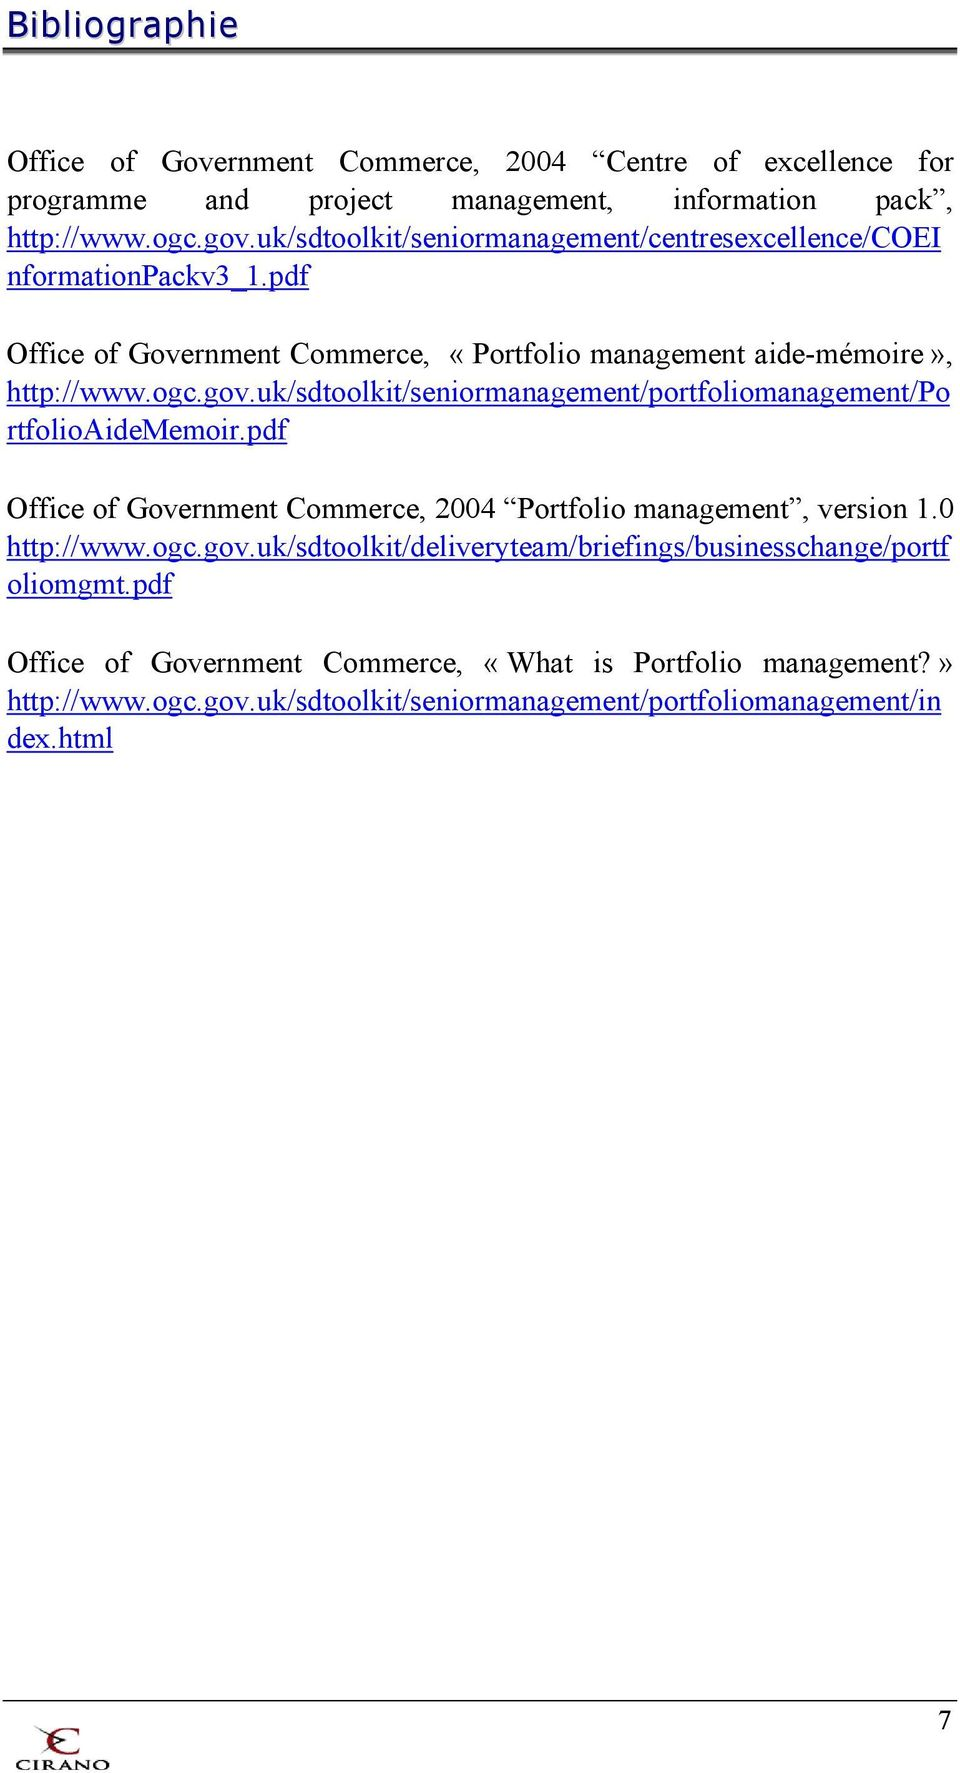 uk/sdtoolkit/seniormanagement/portfoliomanagement/po rtfolioaidememoir.pdf Office of Government Commerce, 2004 Portfolio management, version 1.0 http://www.ogc.gov.